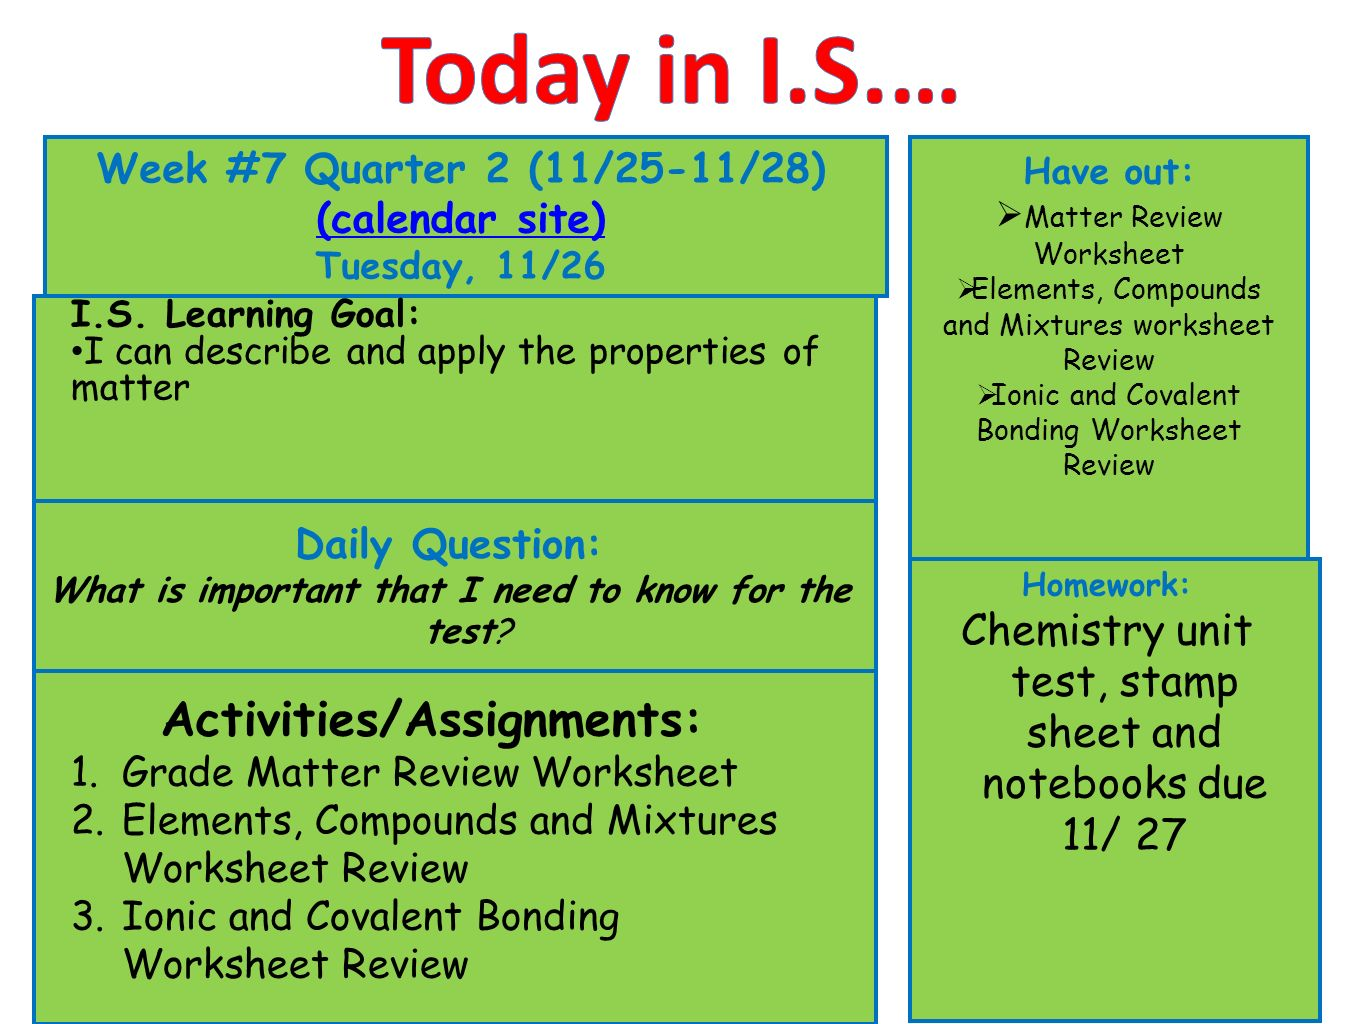 Chemical Bonding Review Worksheet Answer Key